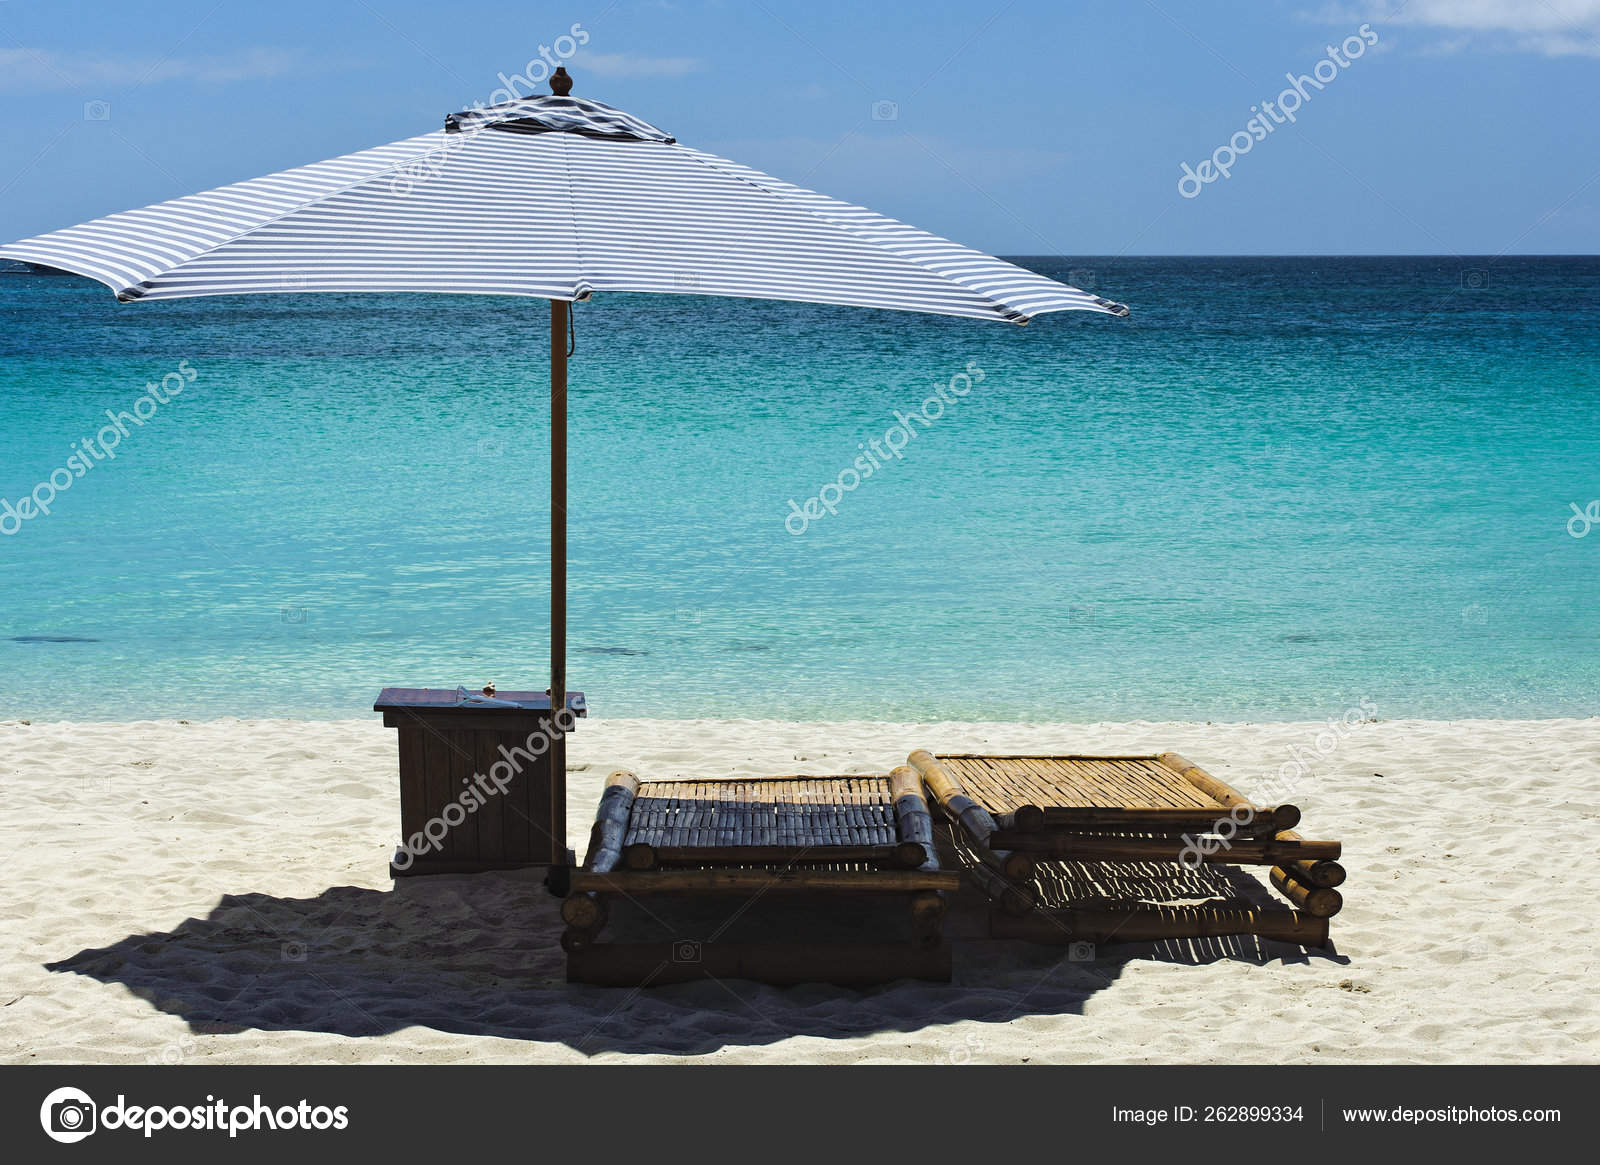 Enjoyable Tranquille Beach Scene Lounging Chairs Overlooking Clear Machost Co Dining Chair Design Ideas Machostcouk